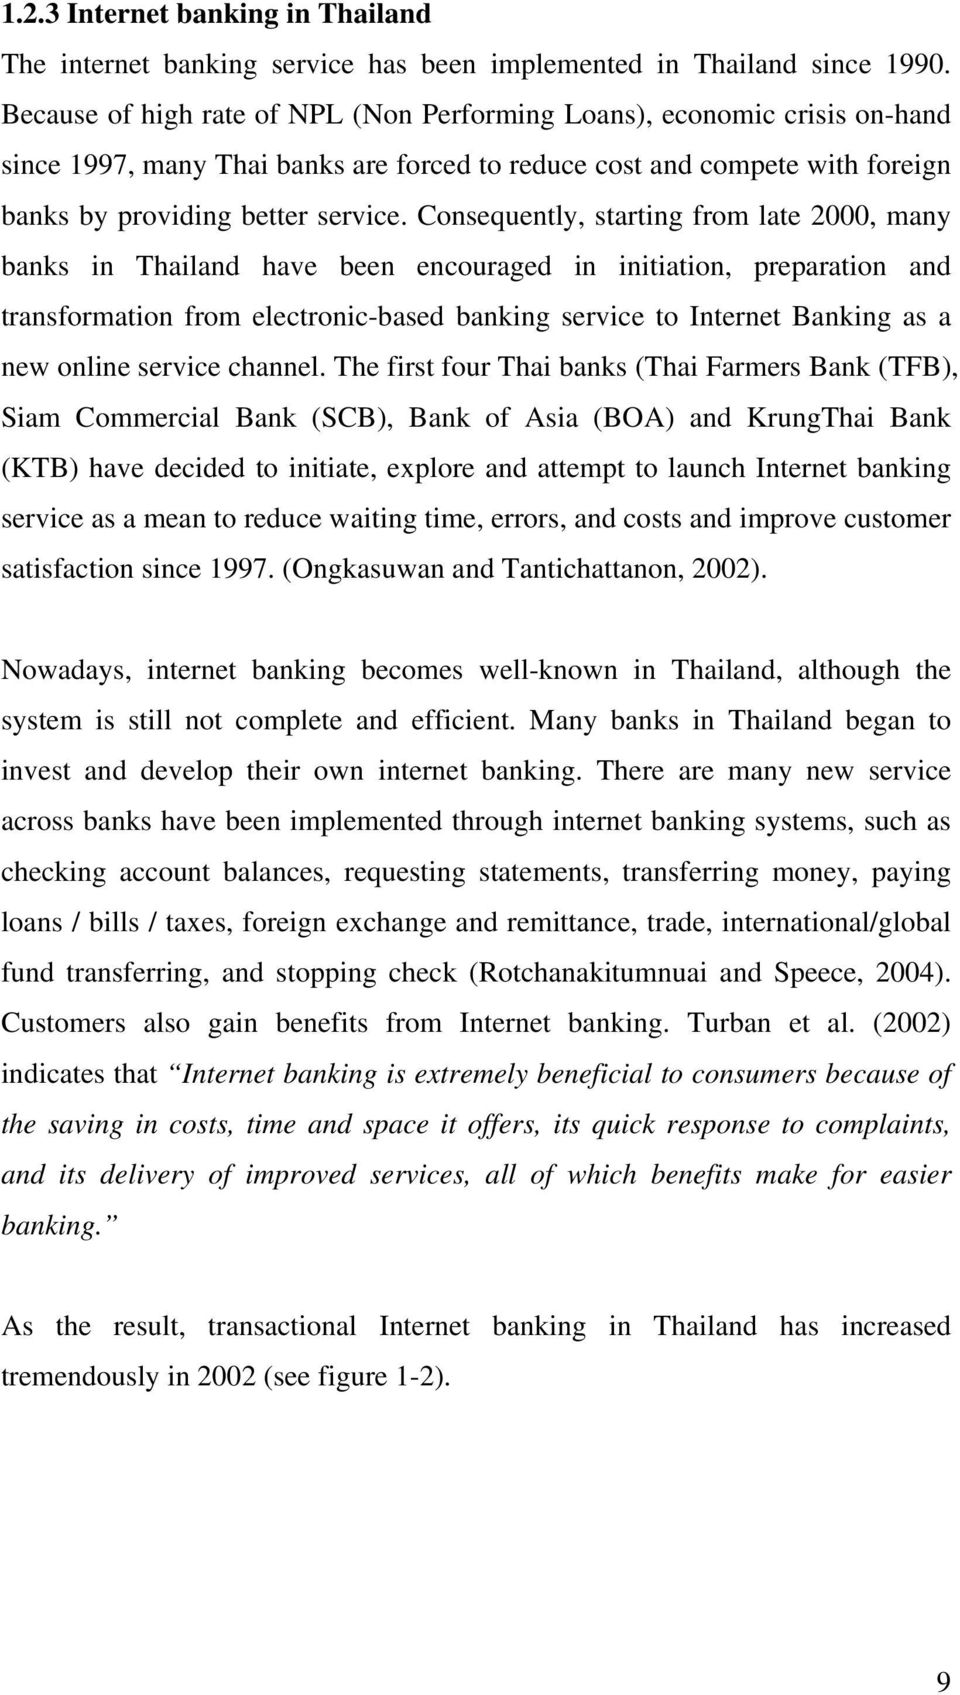 Consequently, starting from late 2000, many banks in Thailand have been encouraged in initiation, preparation and transformation from electronic-based banking service to Internet Banking as a new